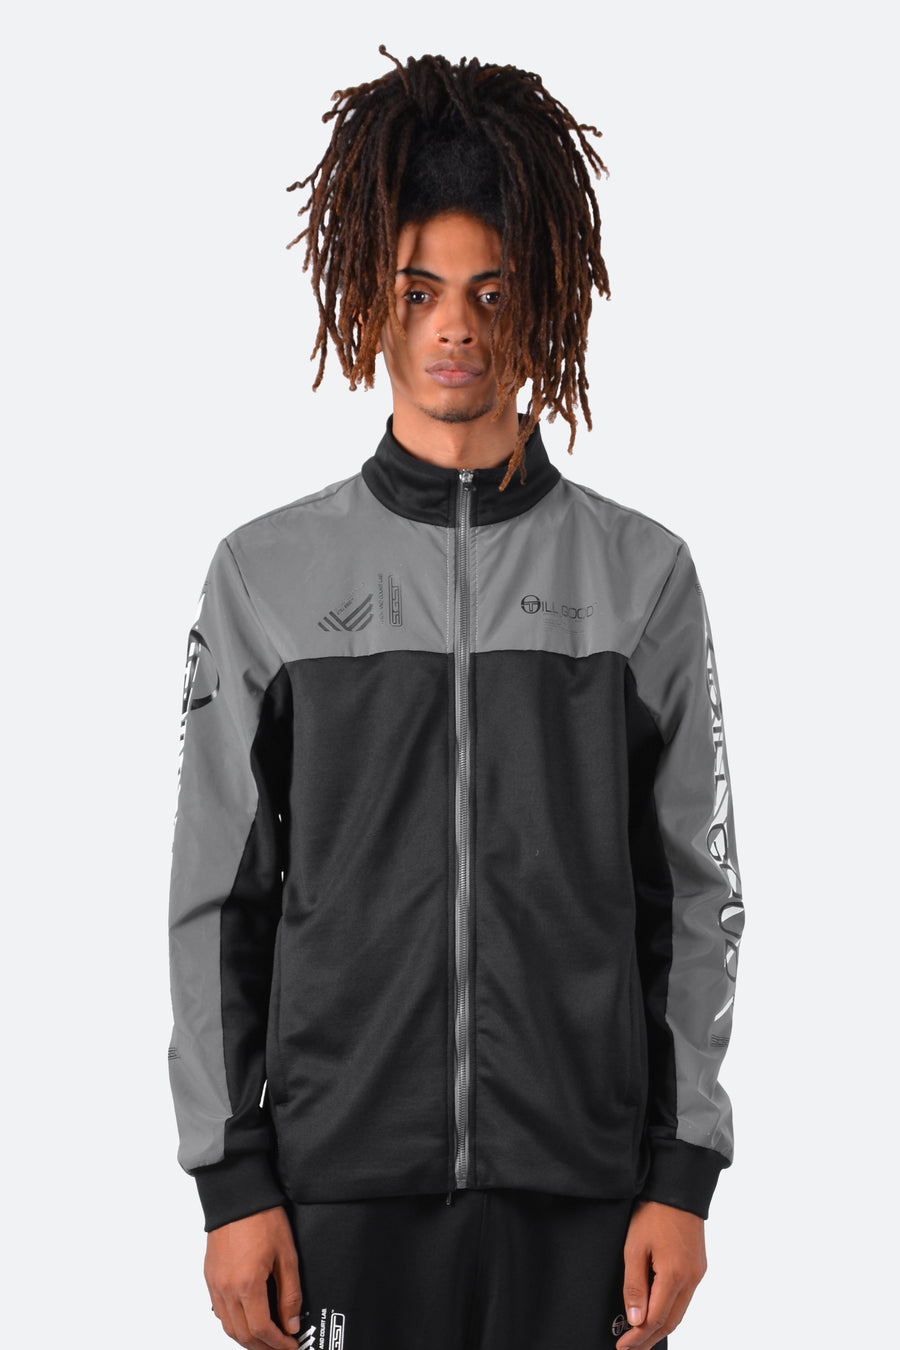 Still Good x Sergio Tacchini F1 Lab Reflective Track Jacket #Black/Reflective Grey